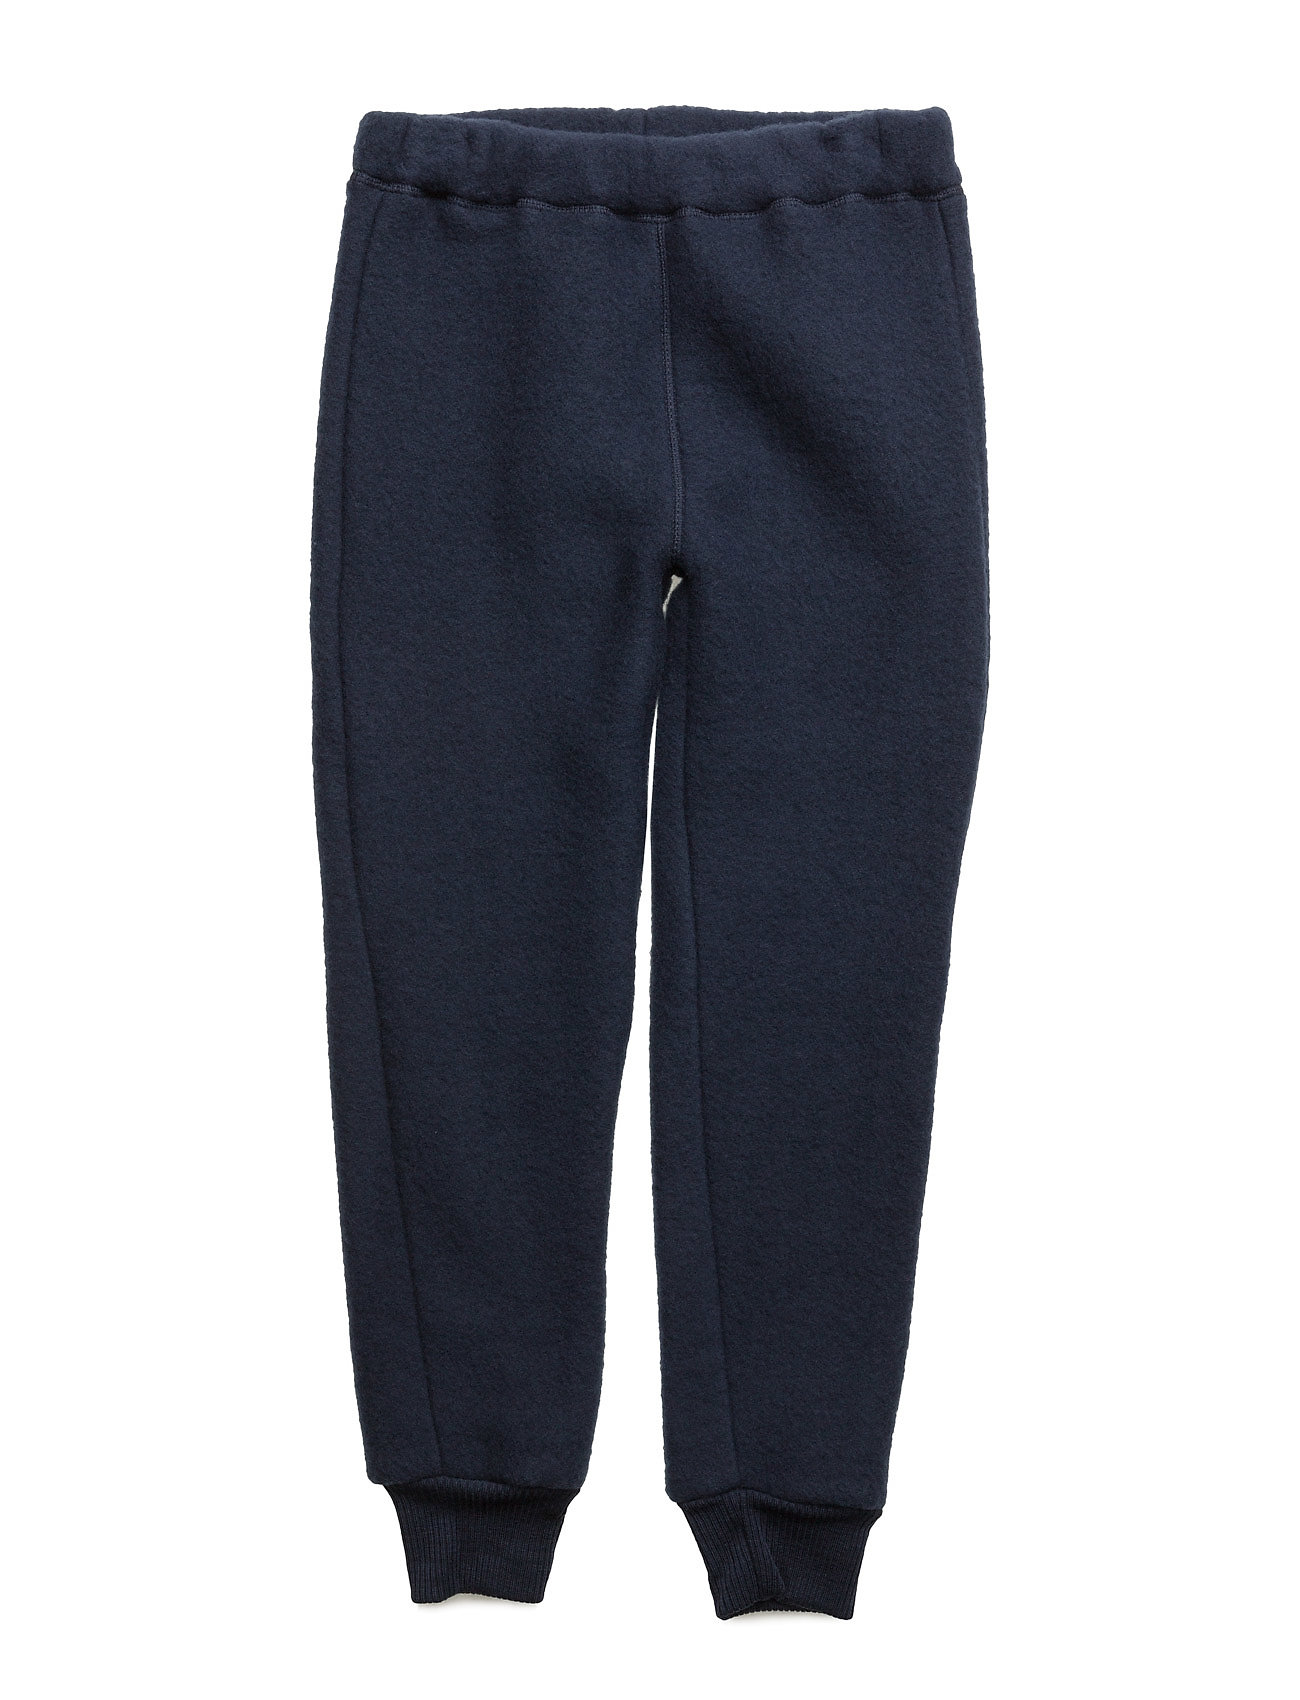 Image of Wool Pants Bukser Blå Mikk-Line (2739898505)